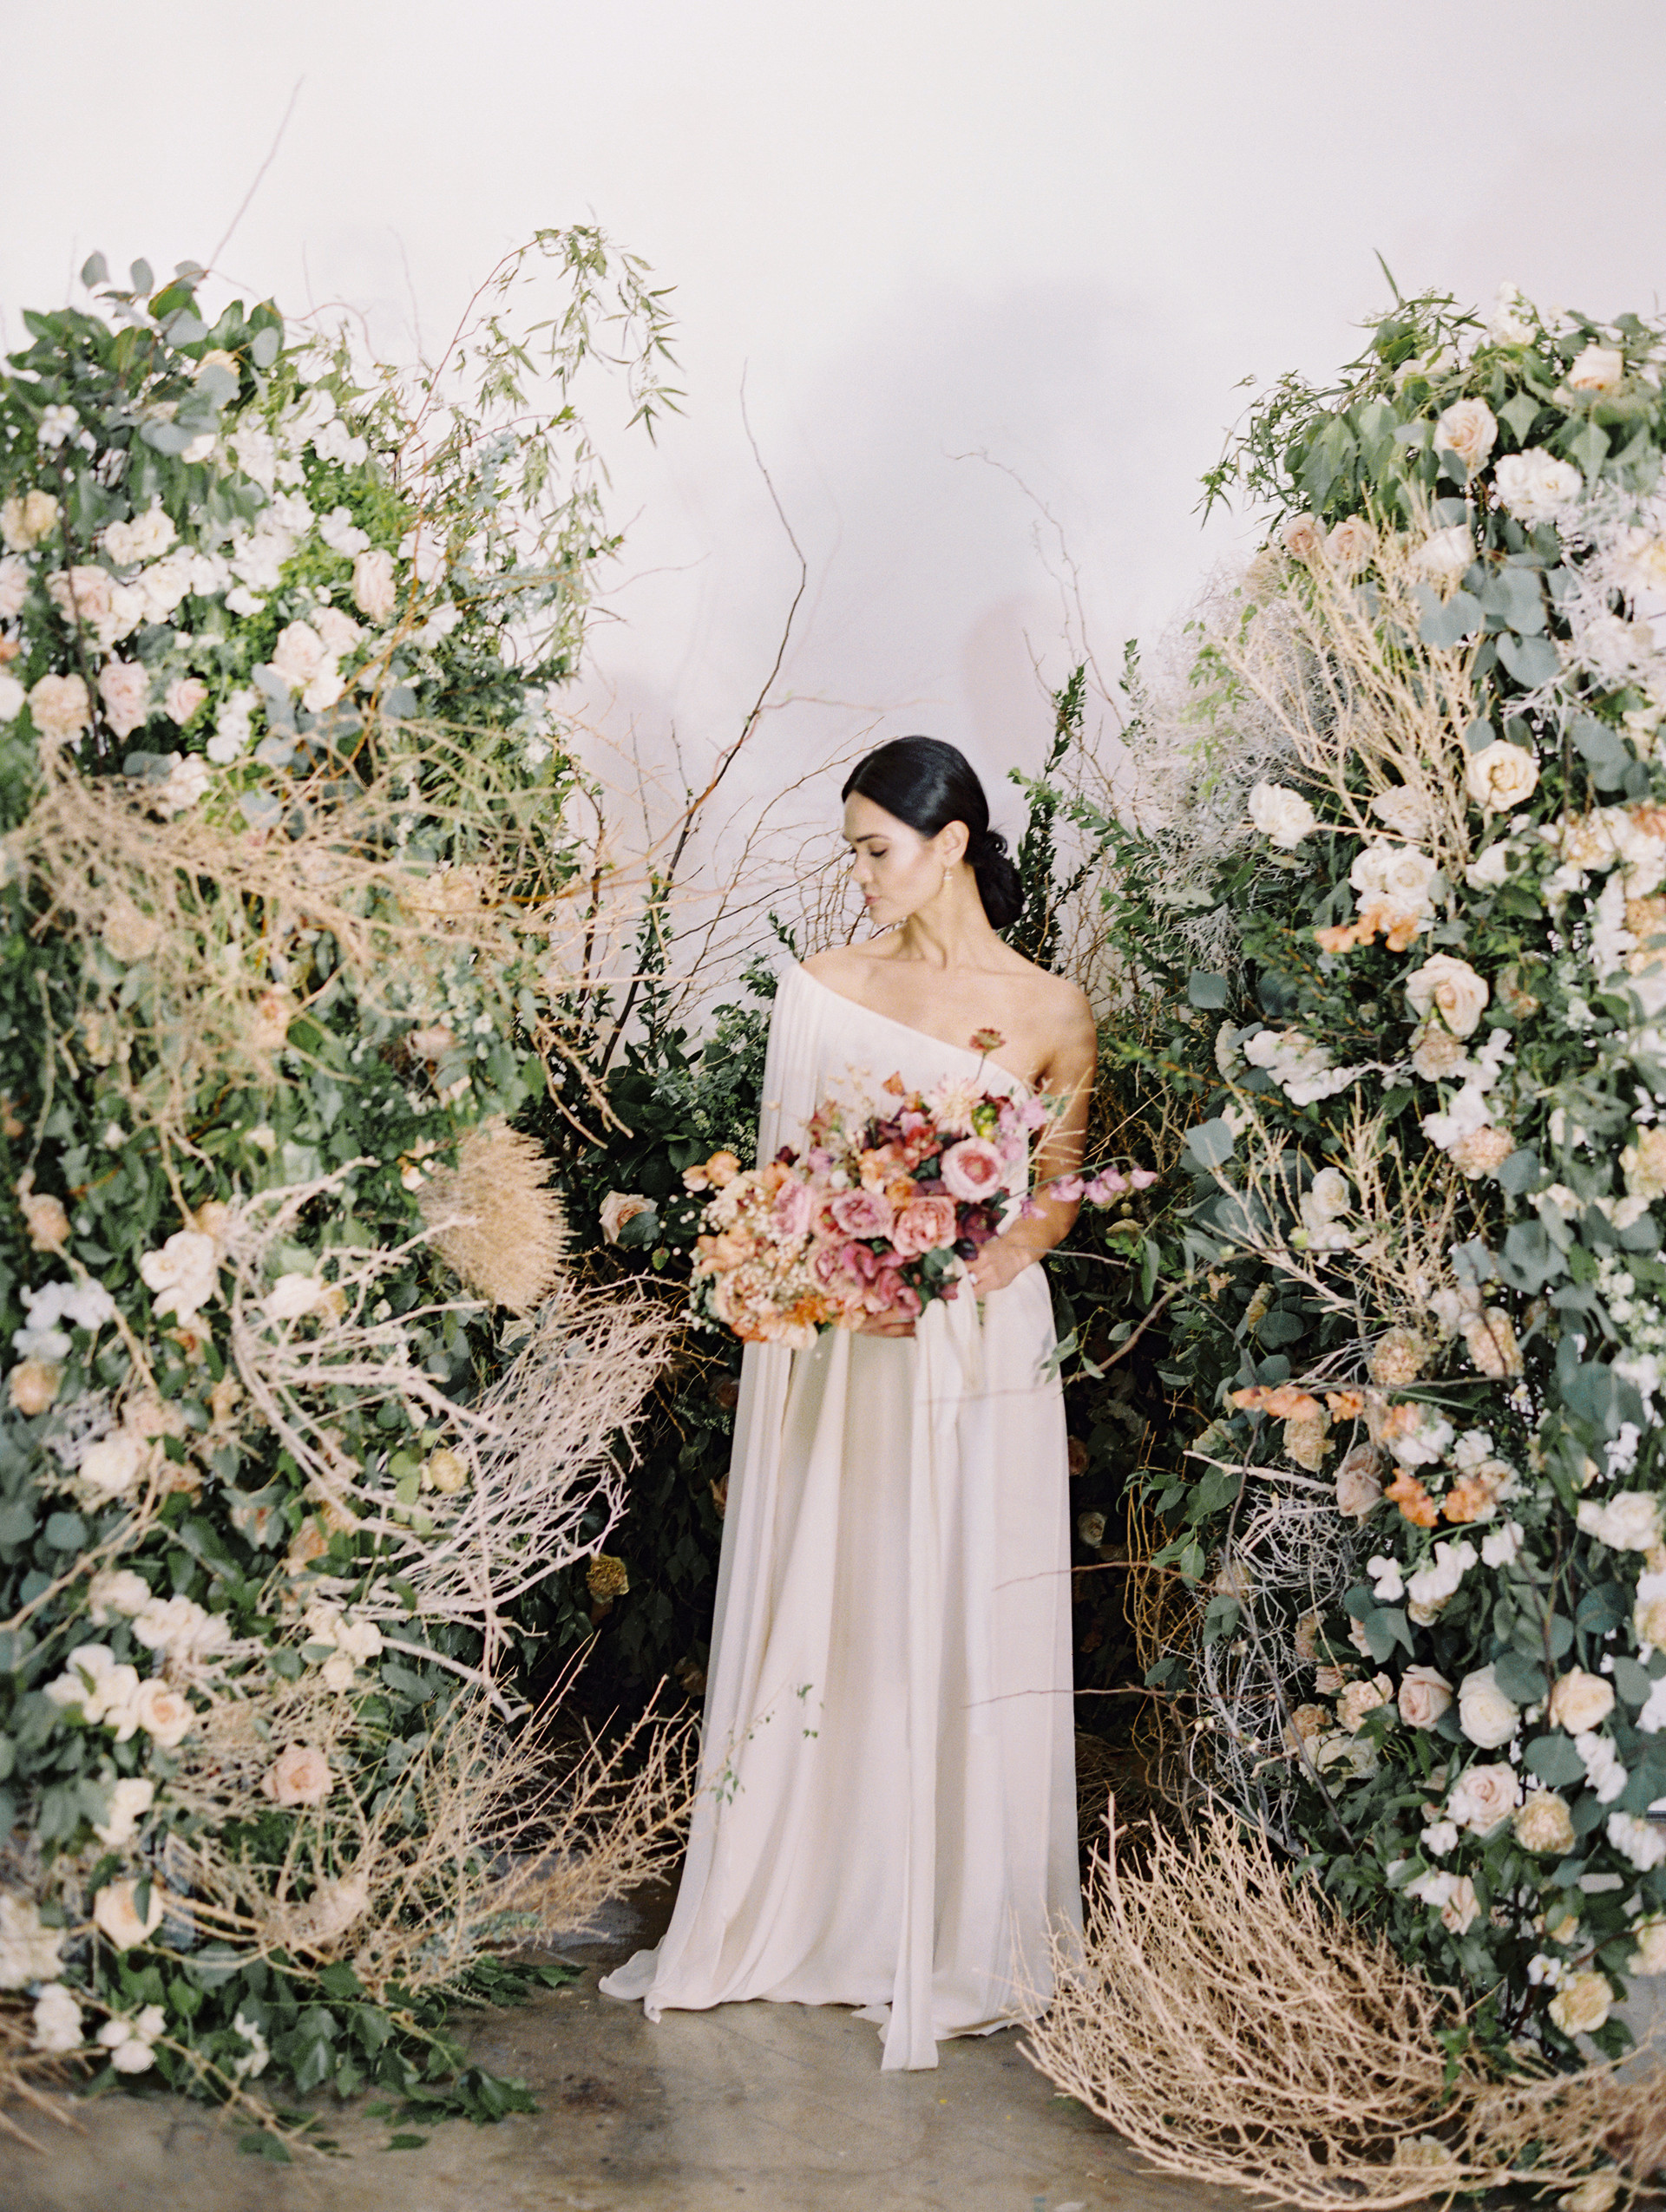 Rustic ceremony backdrop with tumbleweeds, fresh and dried floral. Photo: Gaby Jeter